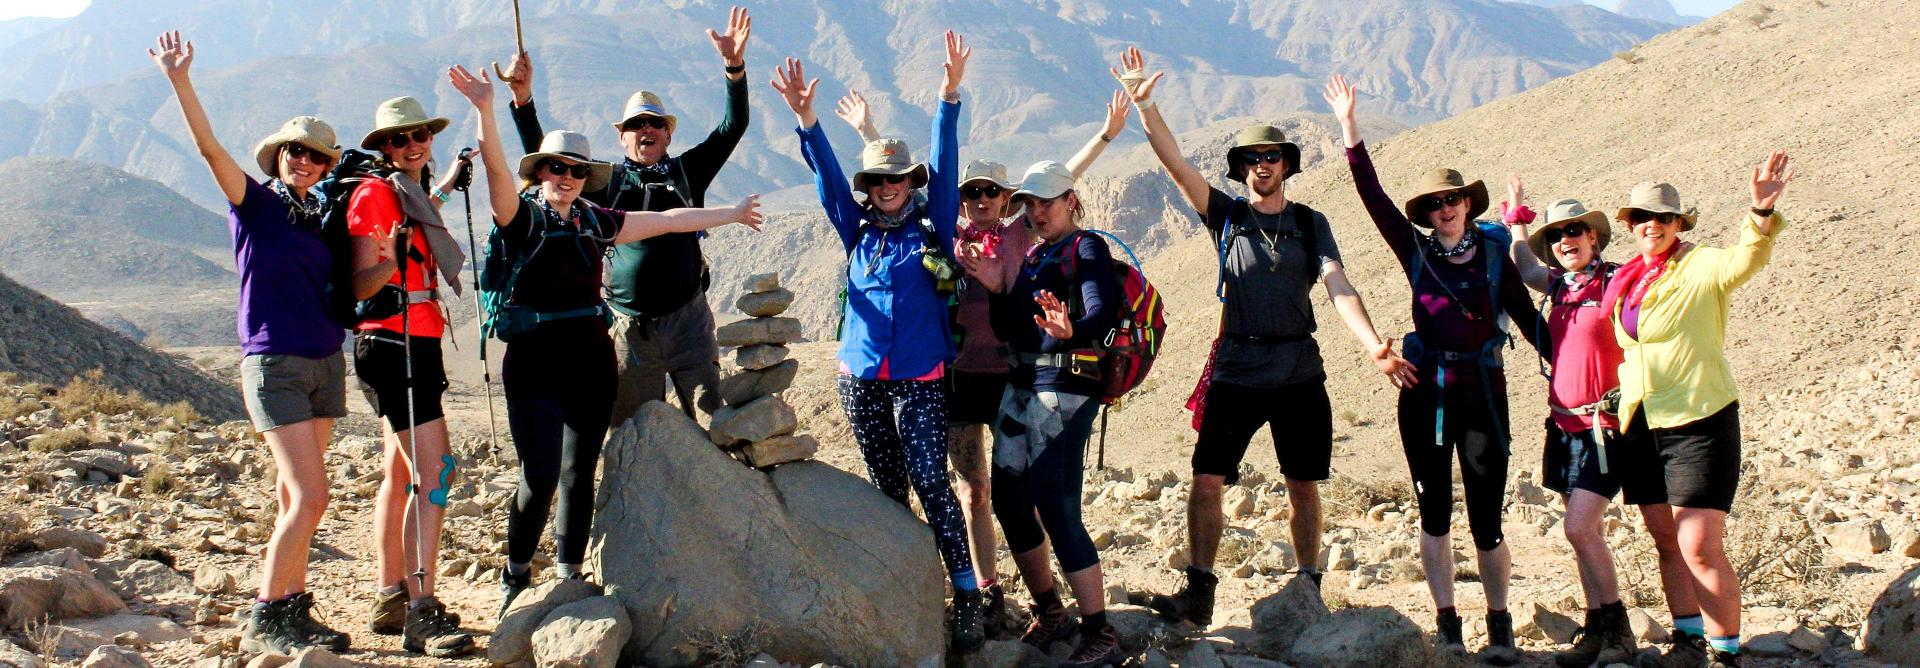 Successful Oman mountain trek participants